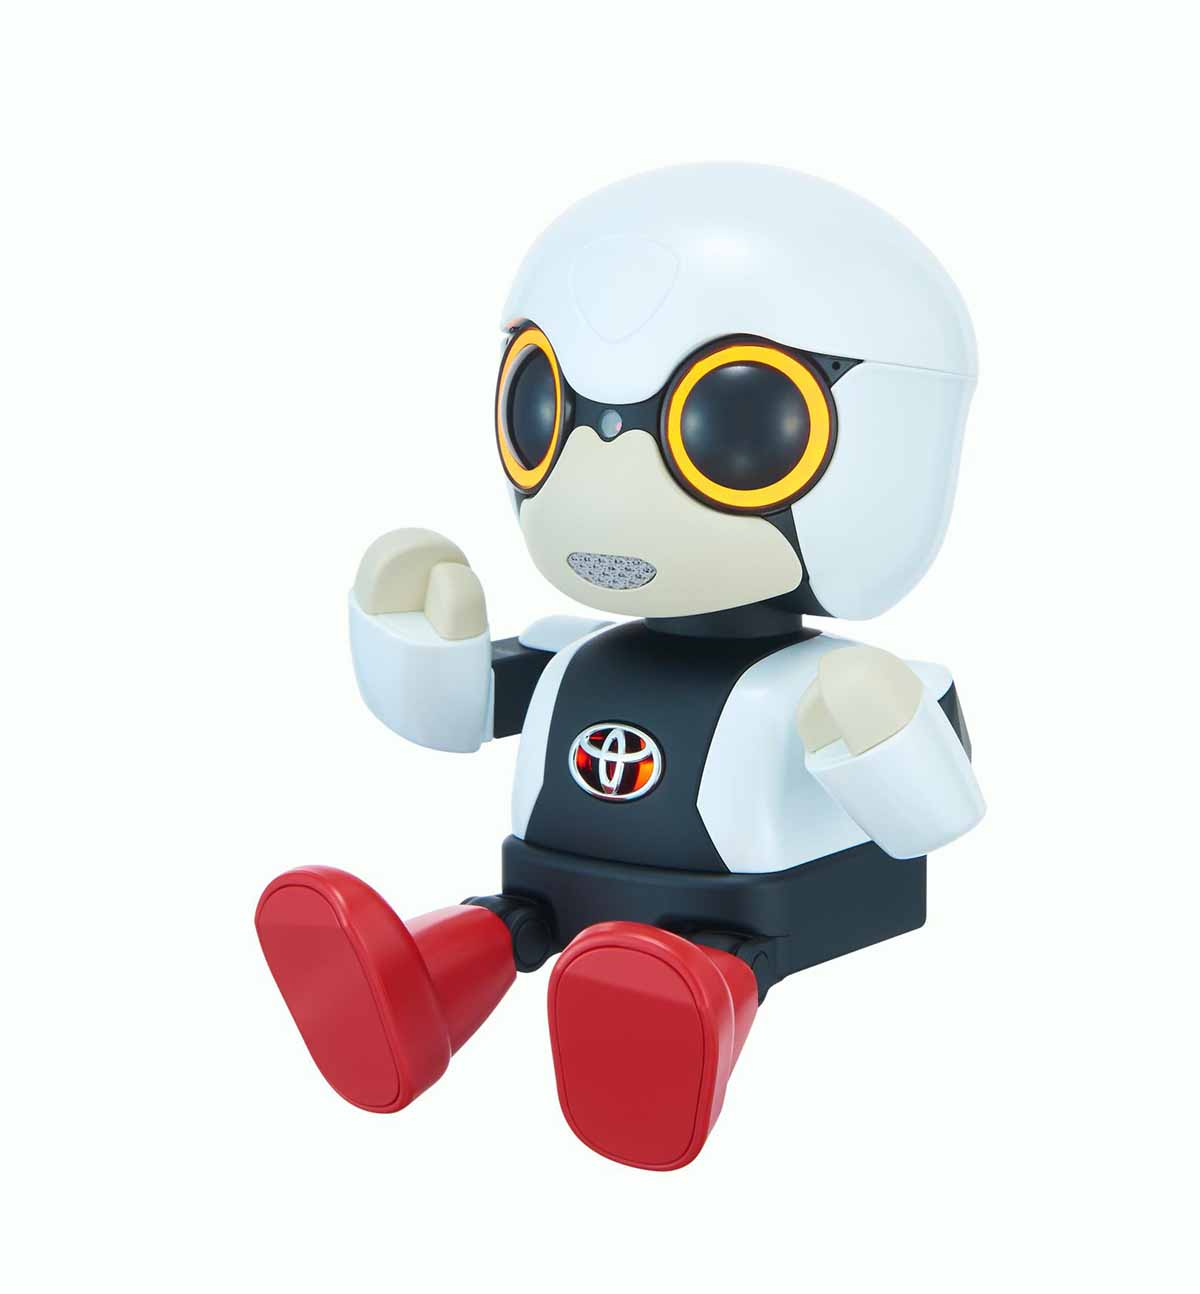 kirobo_mini_4